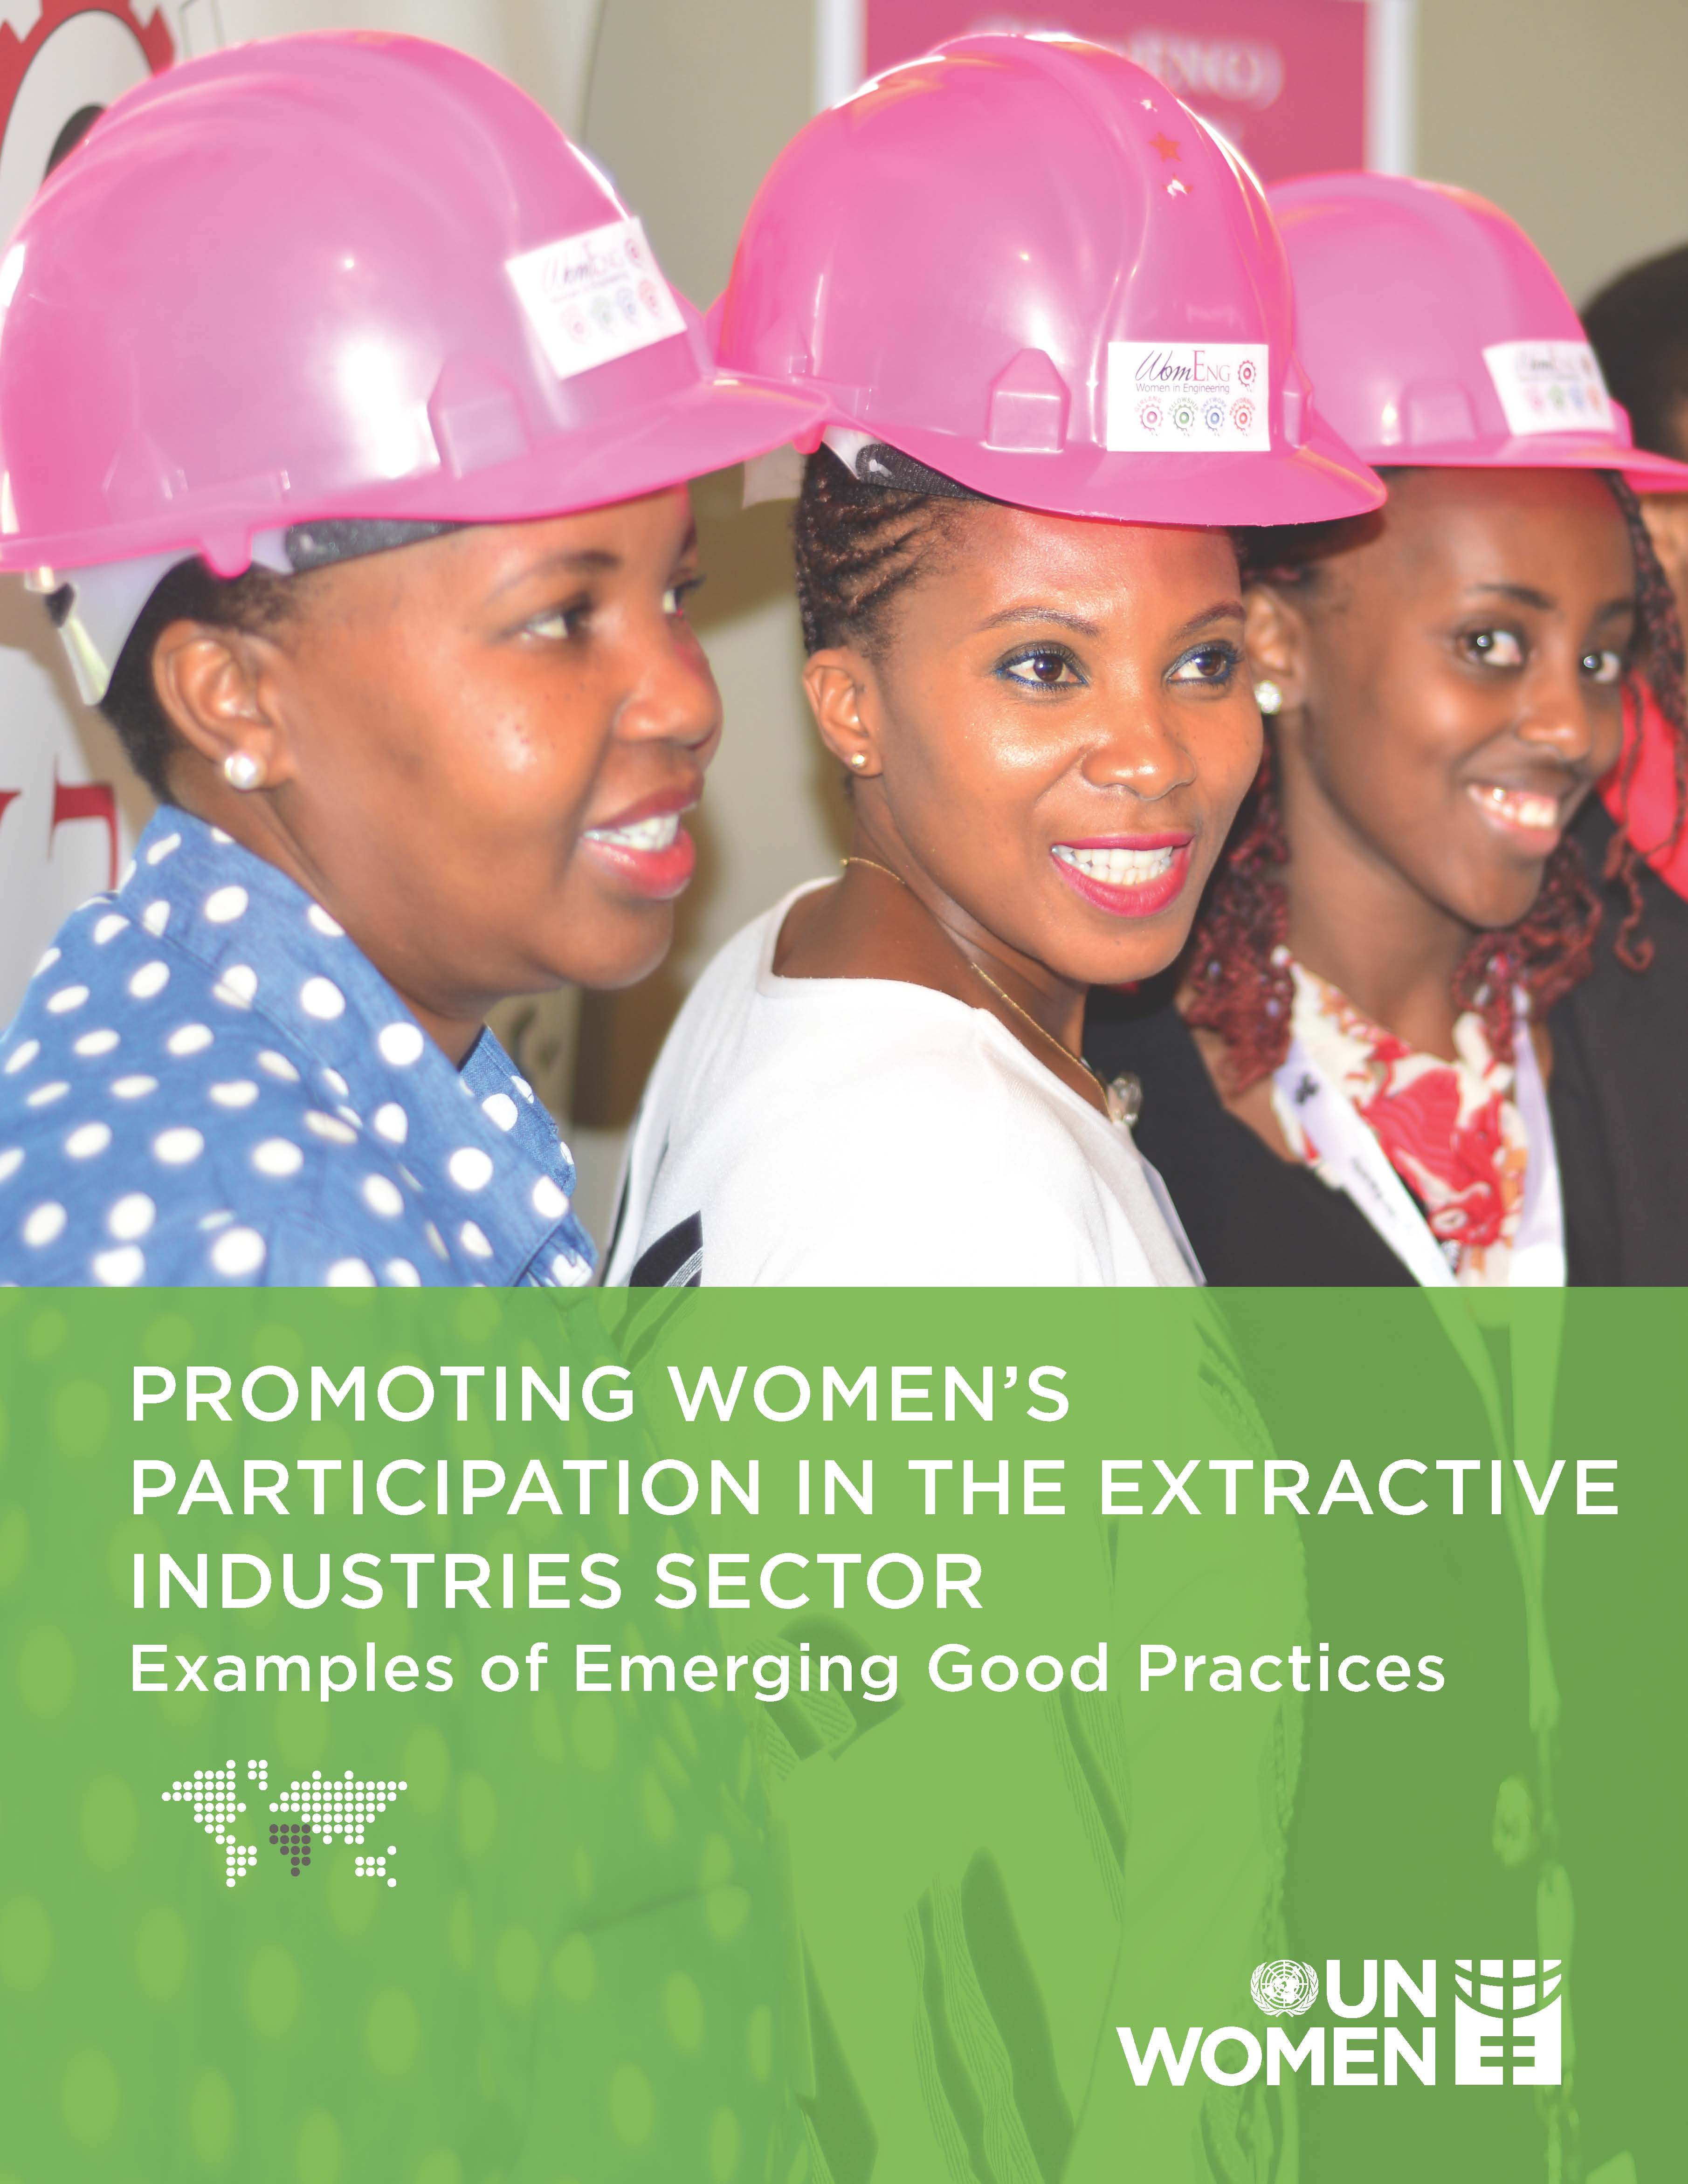 Promoting Women's Participation in the Extractive Industries Sector: Examples of Emerging Good Practices